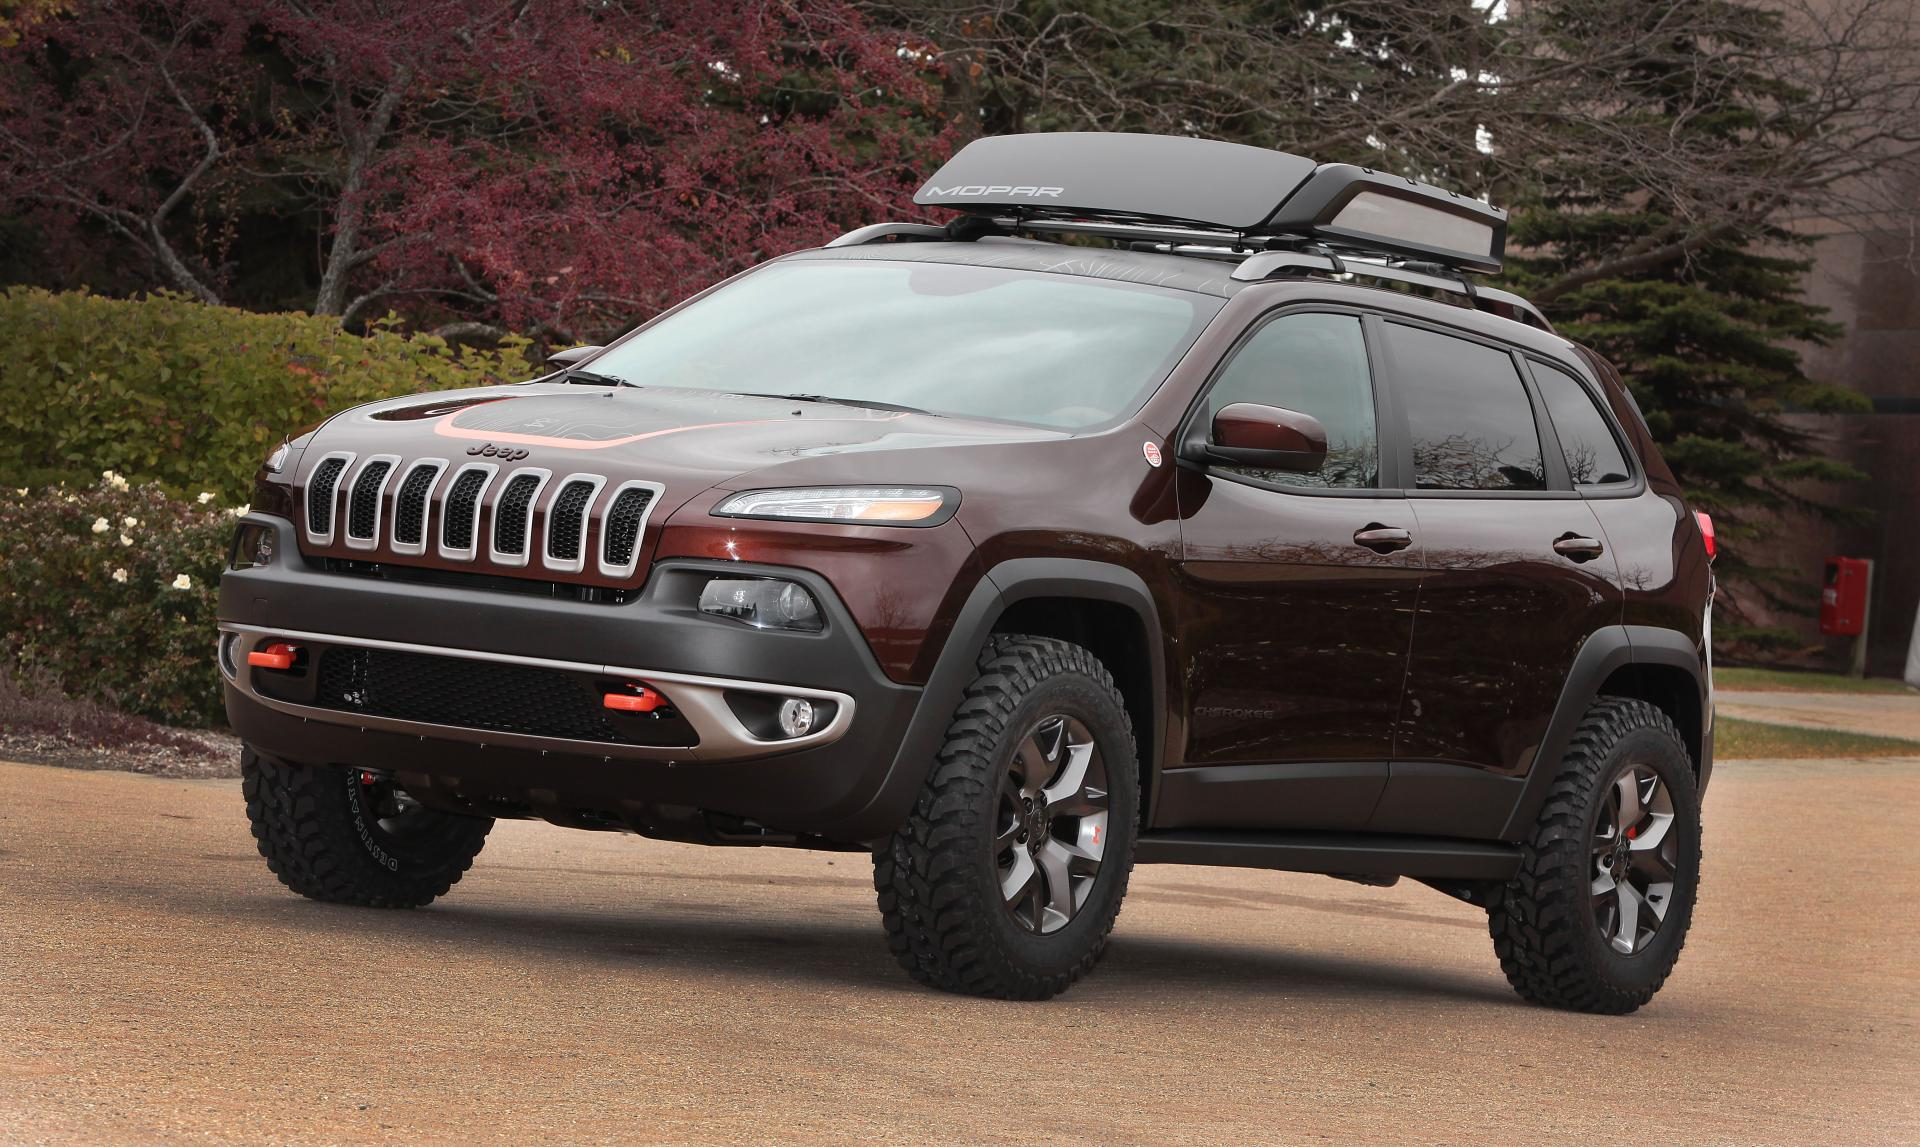 2014 jeep cherokee trail carver - conceptcarz